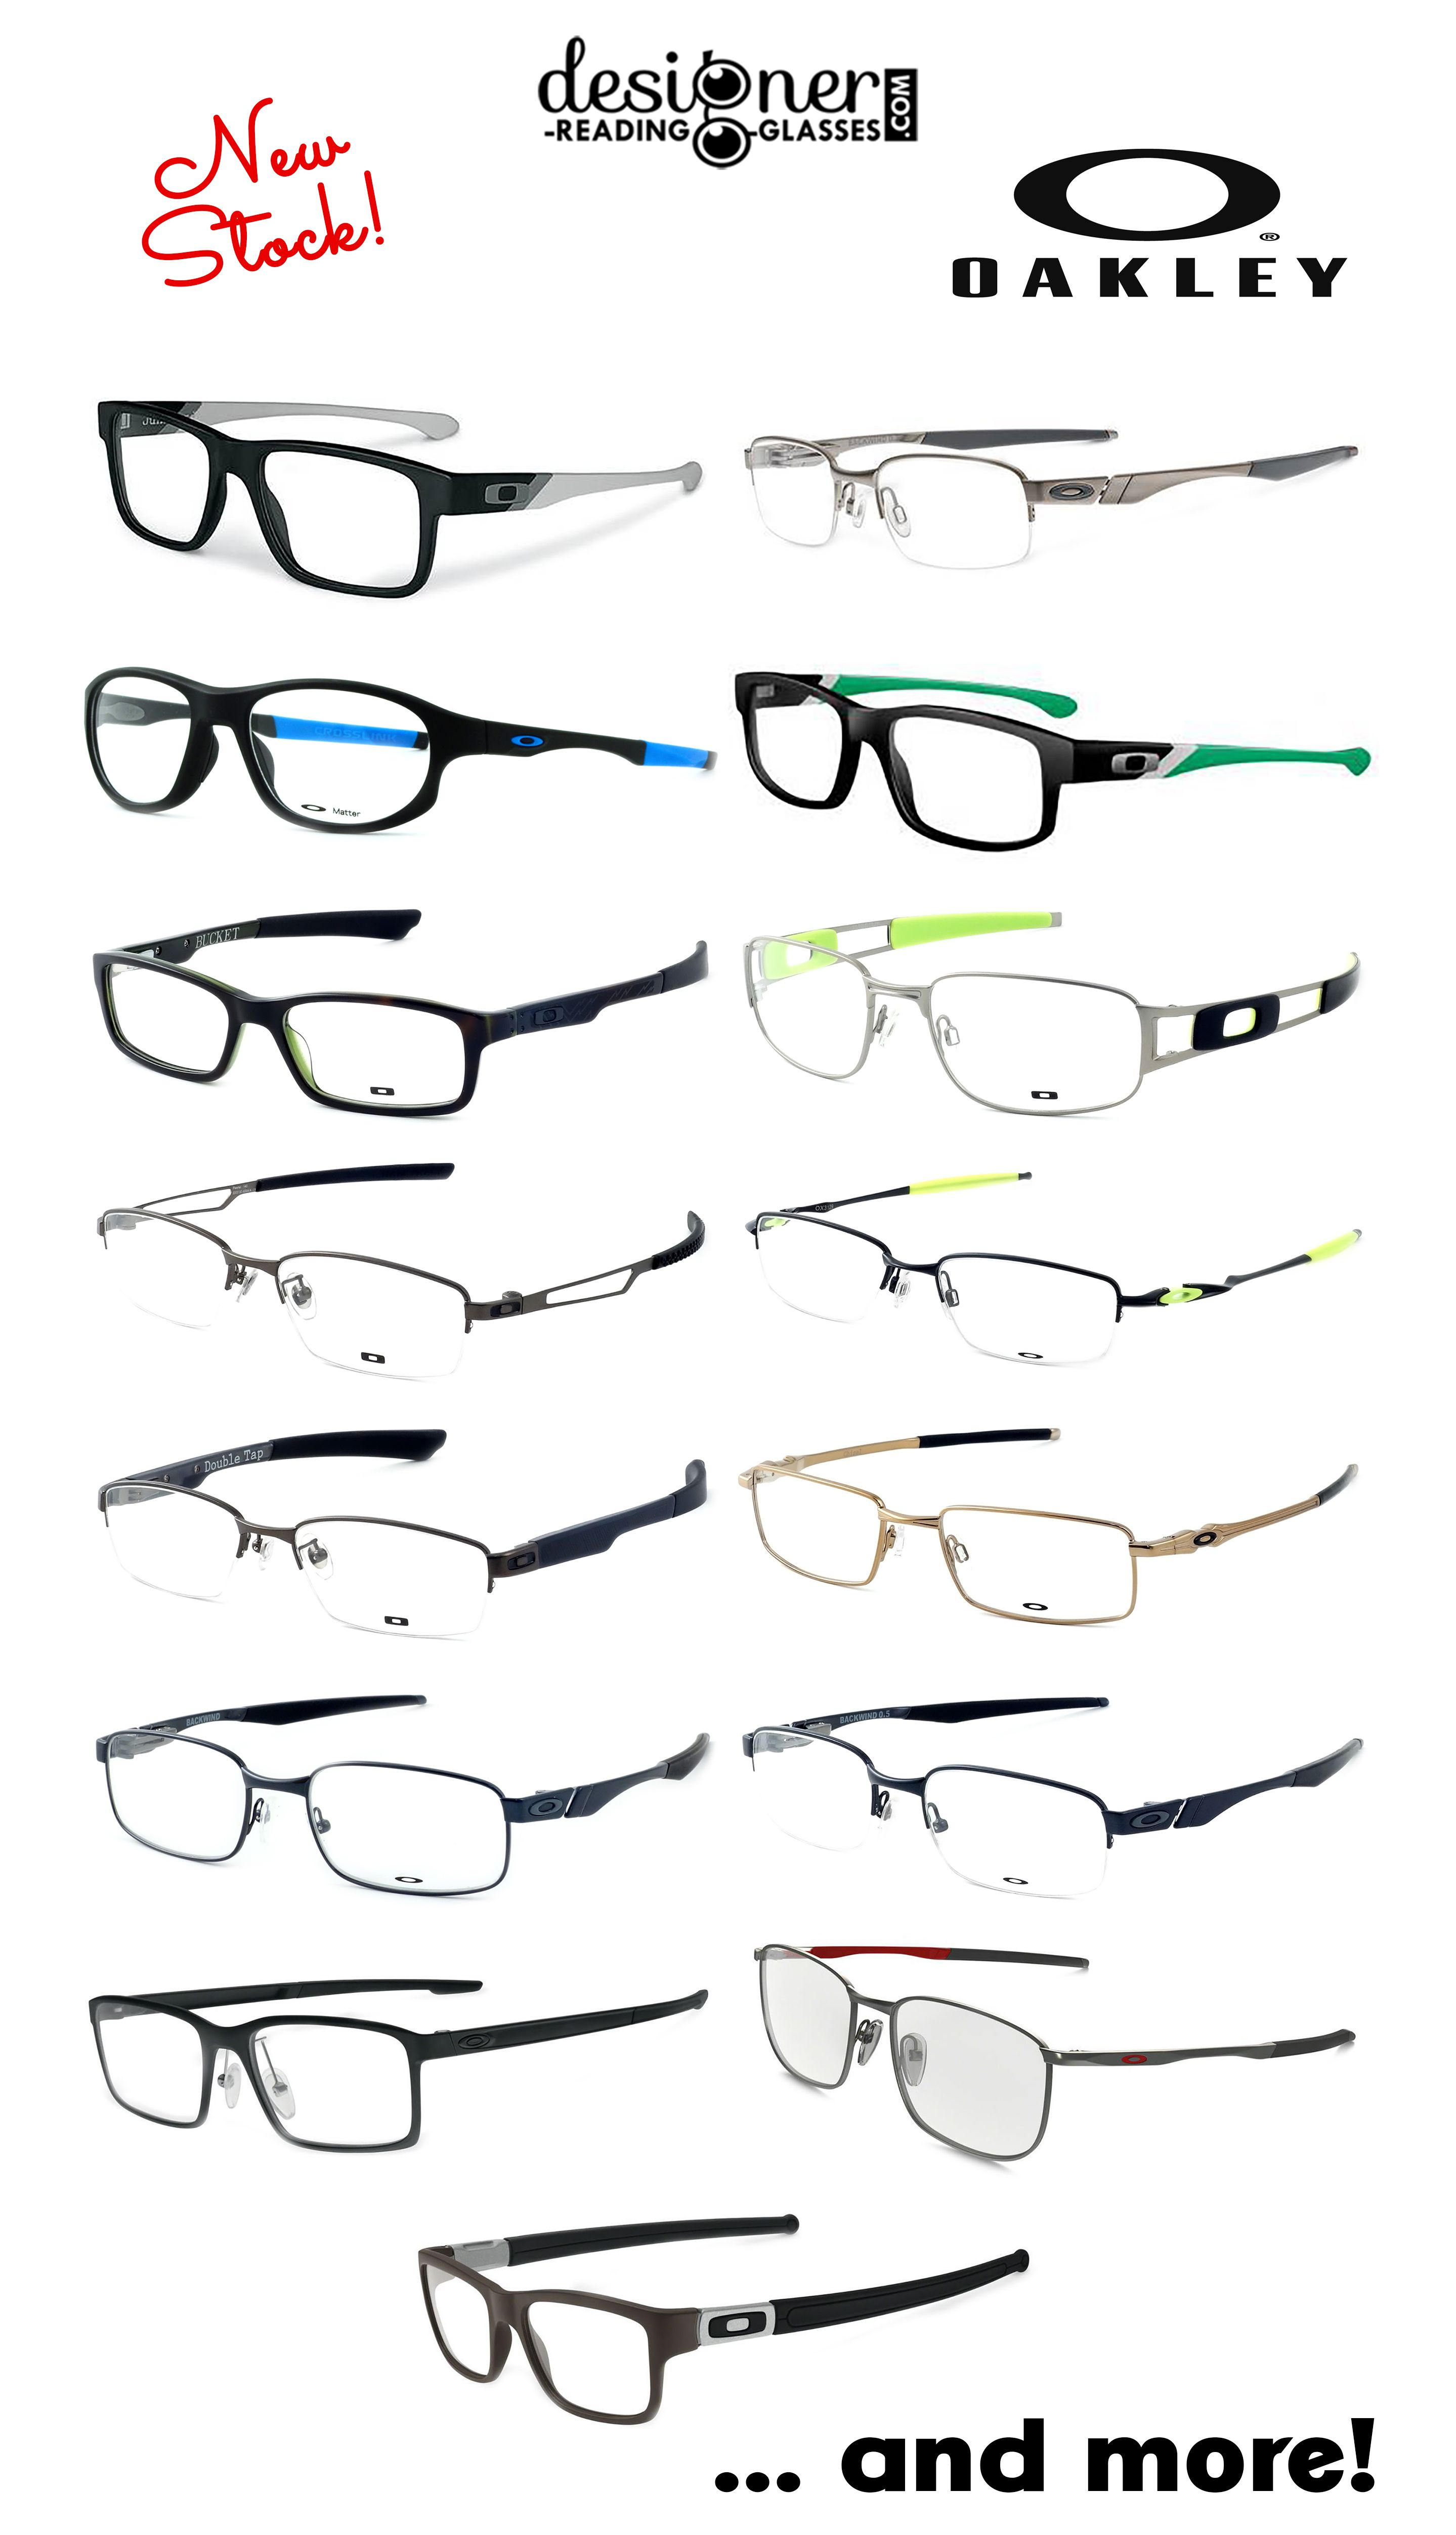 842ce3e4c7 Check out this great new stock of Oakley eyewear!